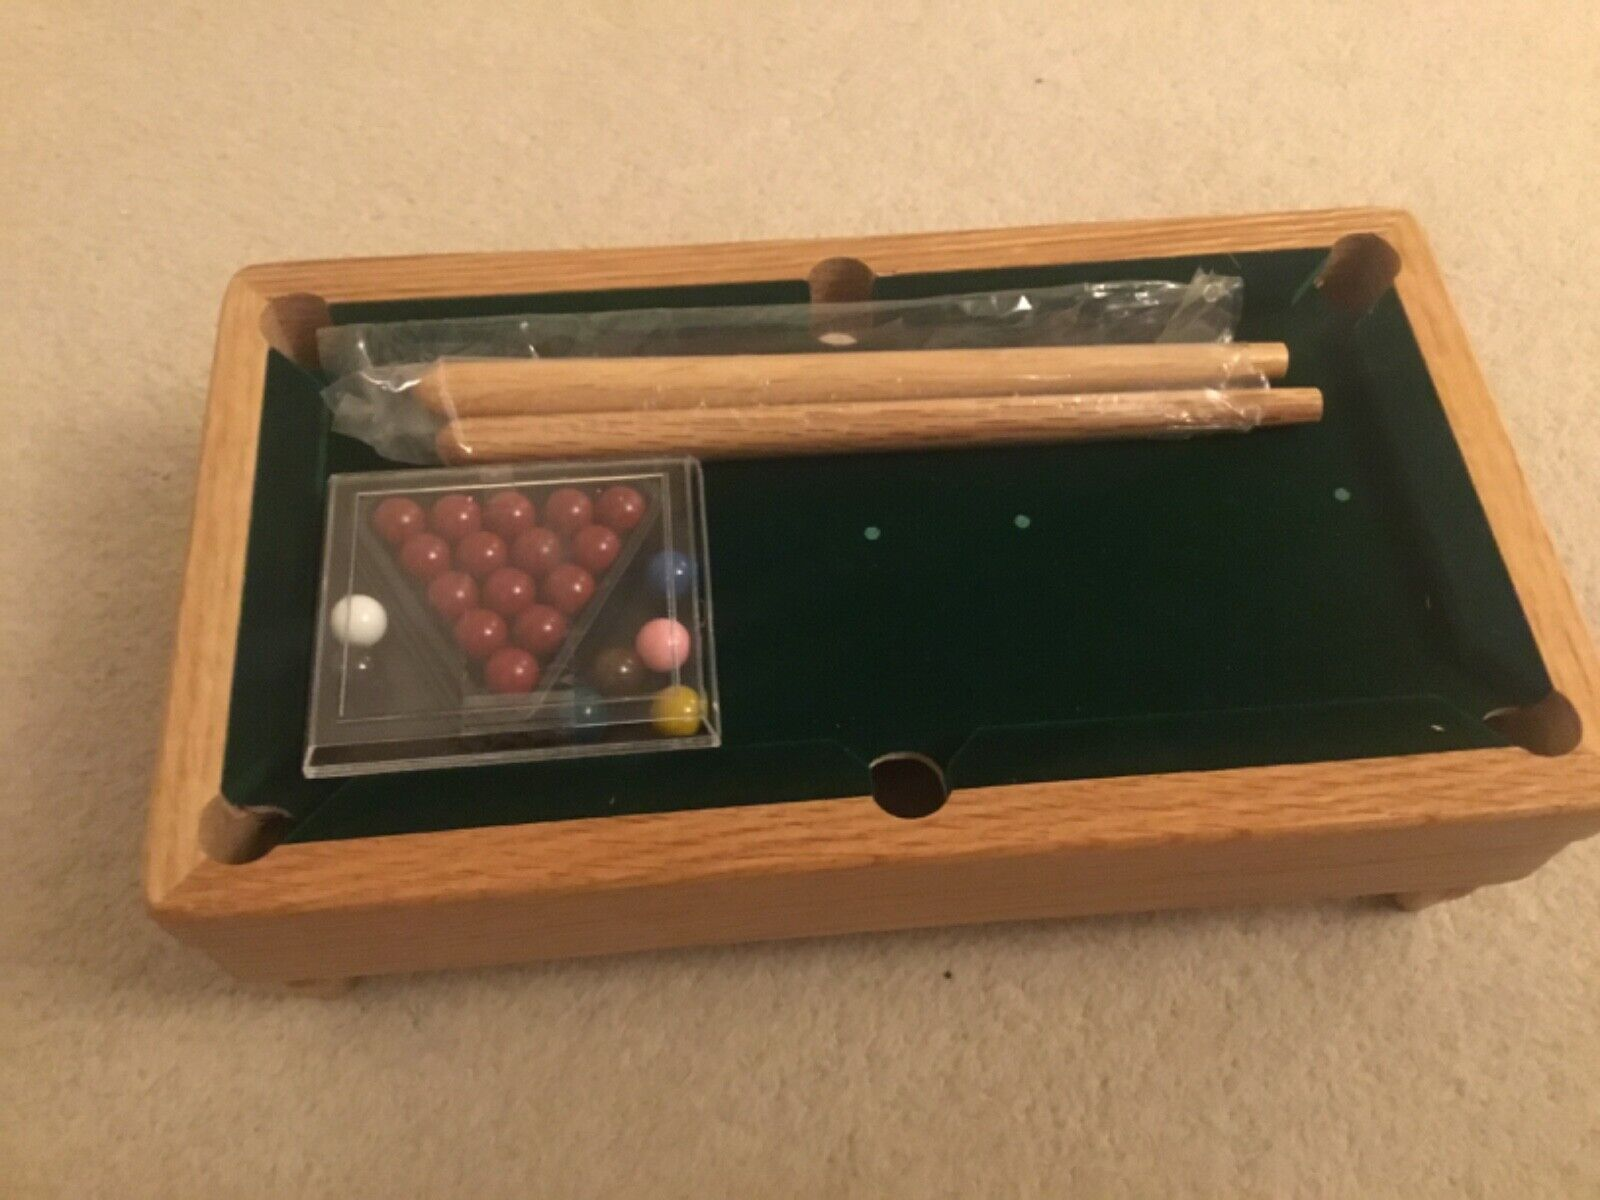 Mini Wooden Table Top Pool Play Snooker Game Set with 2 Mini Cues, 14 Colo